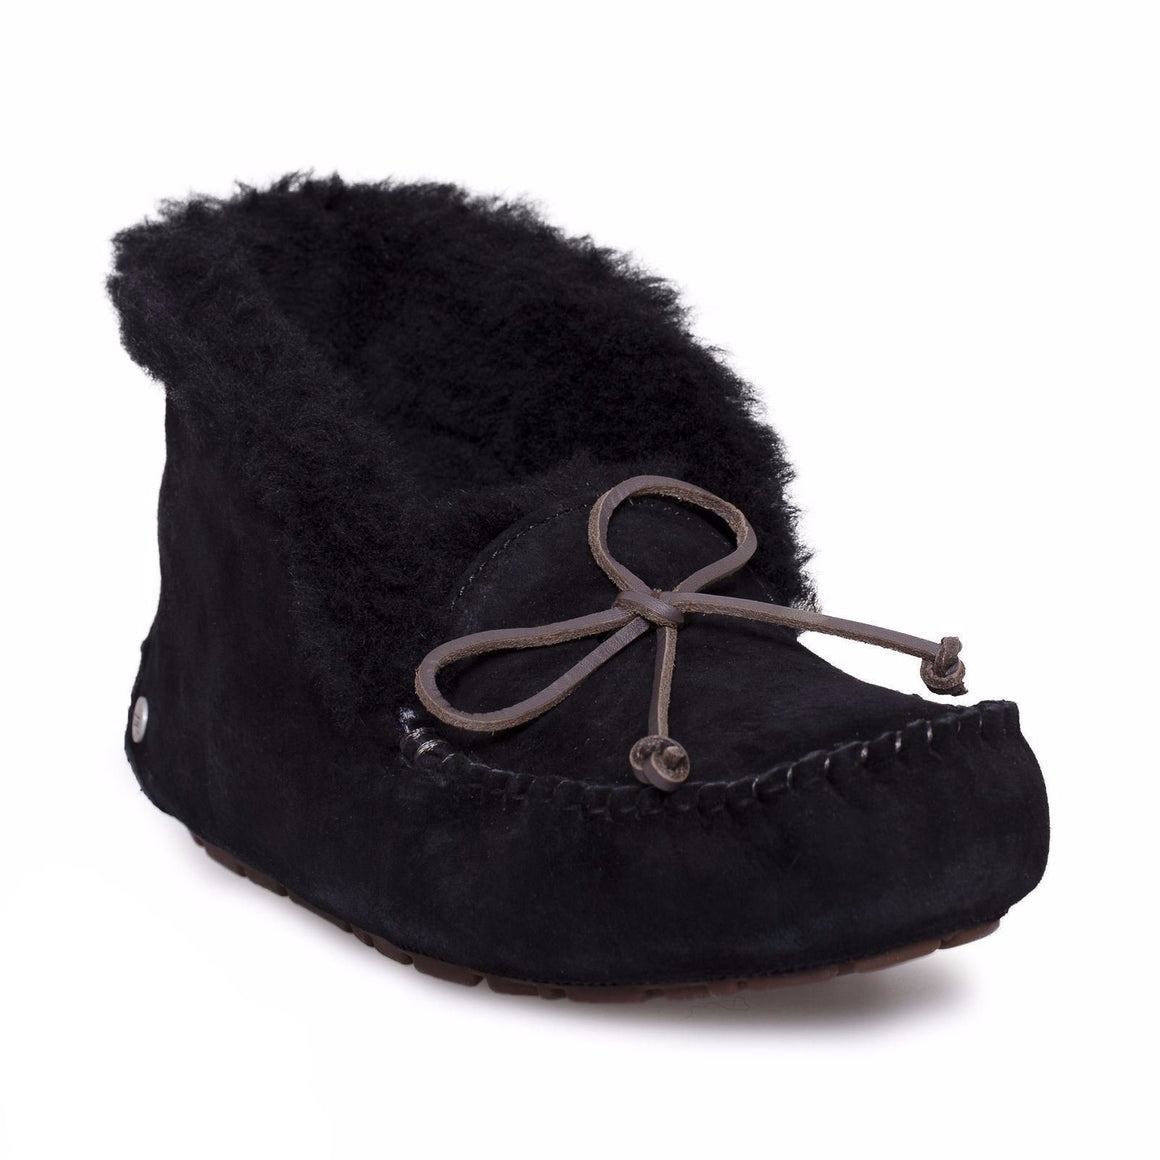 UGG Alena Black Slippers